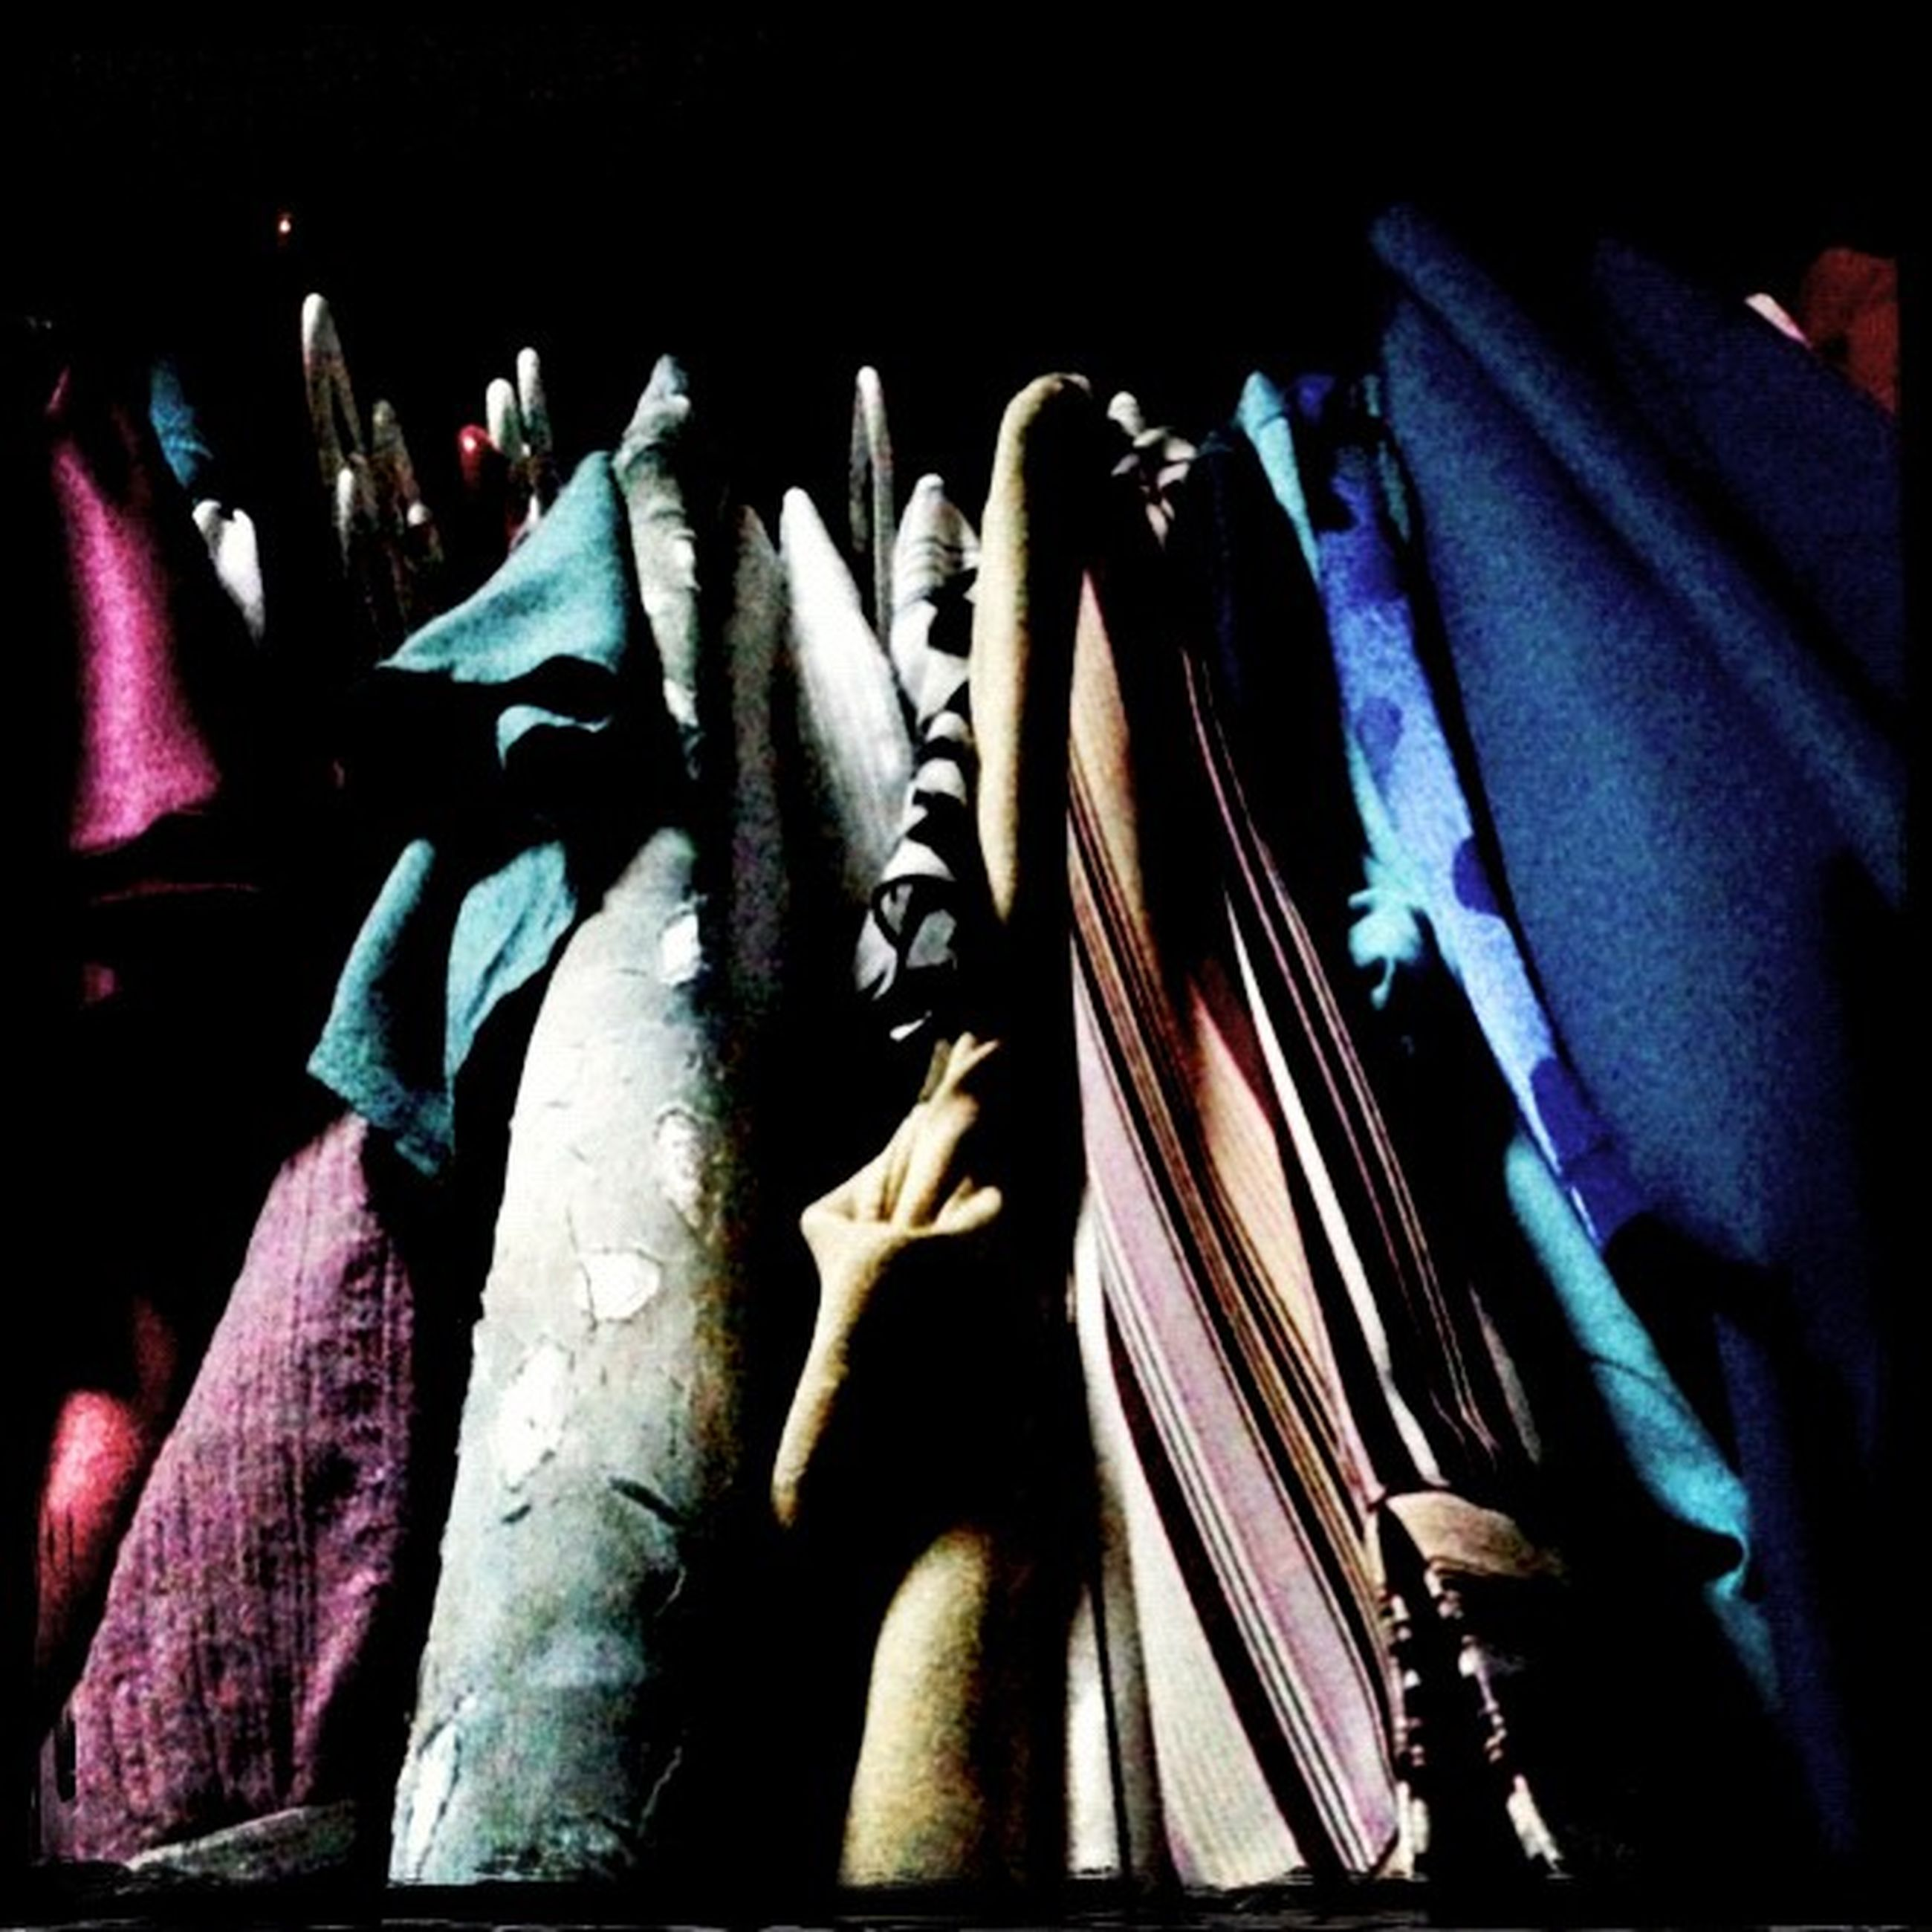 indoors, variation, textile, clothing, still life, close-up, fabric, paper, hanging, in a row, large group of objects, book, choice, no people, multi colored, arrangement, material, clothesline, side by side, abundance